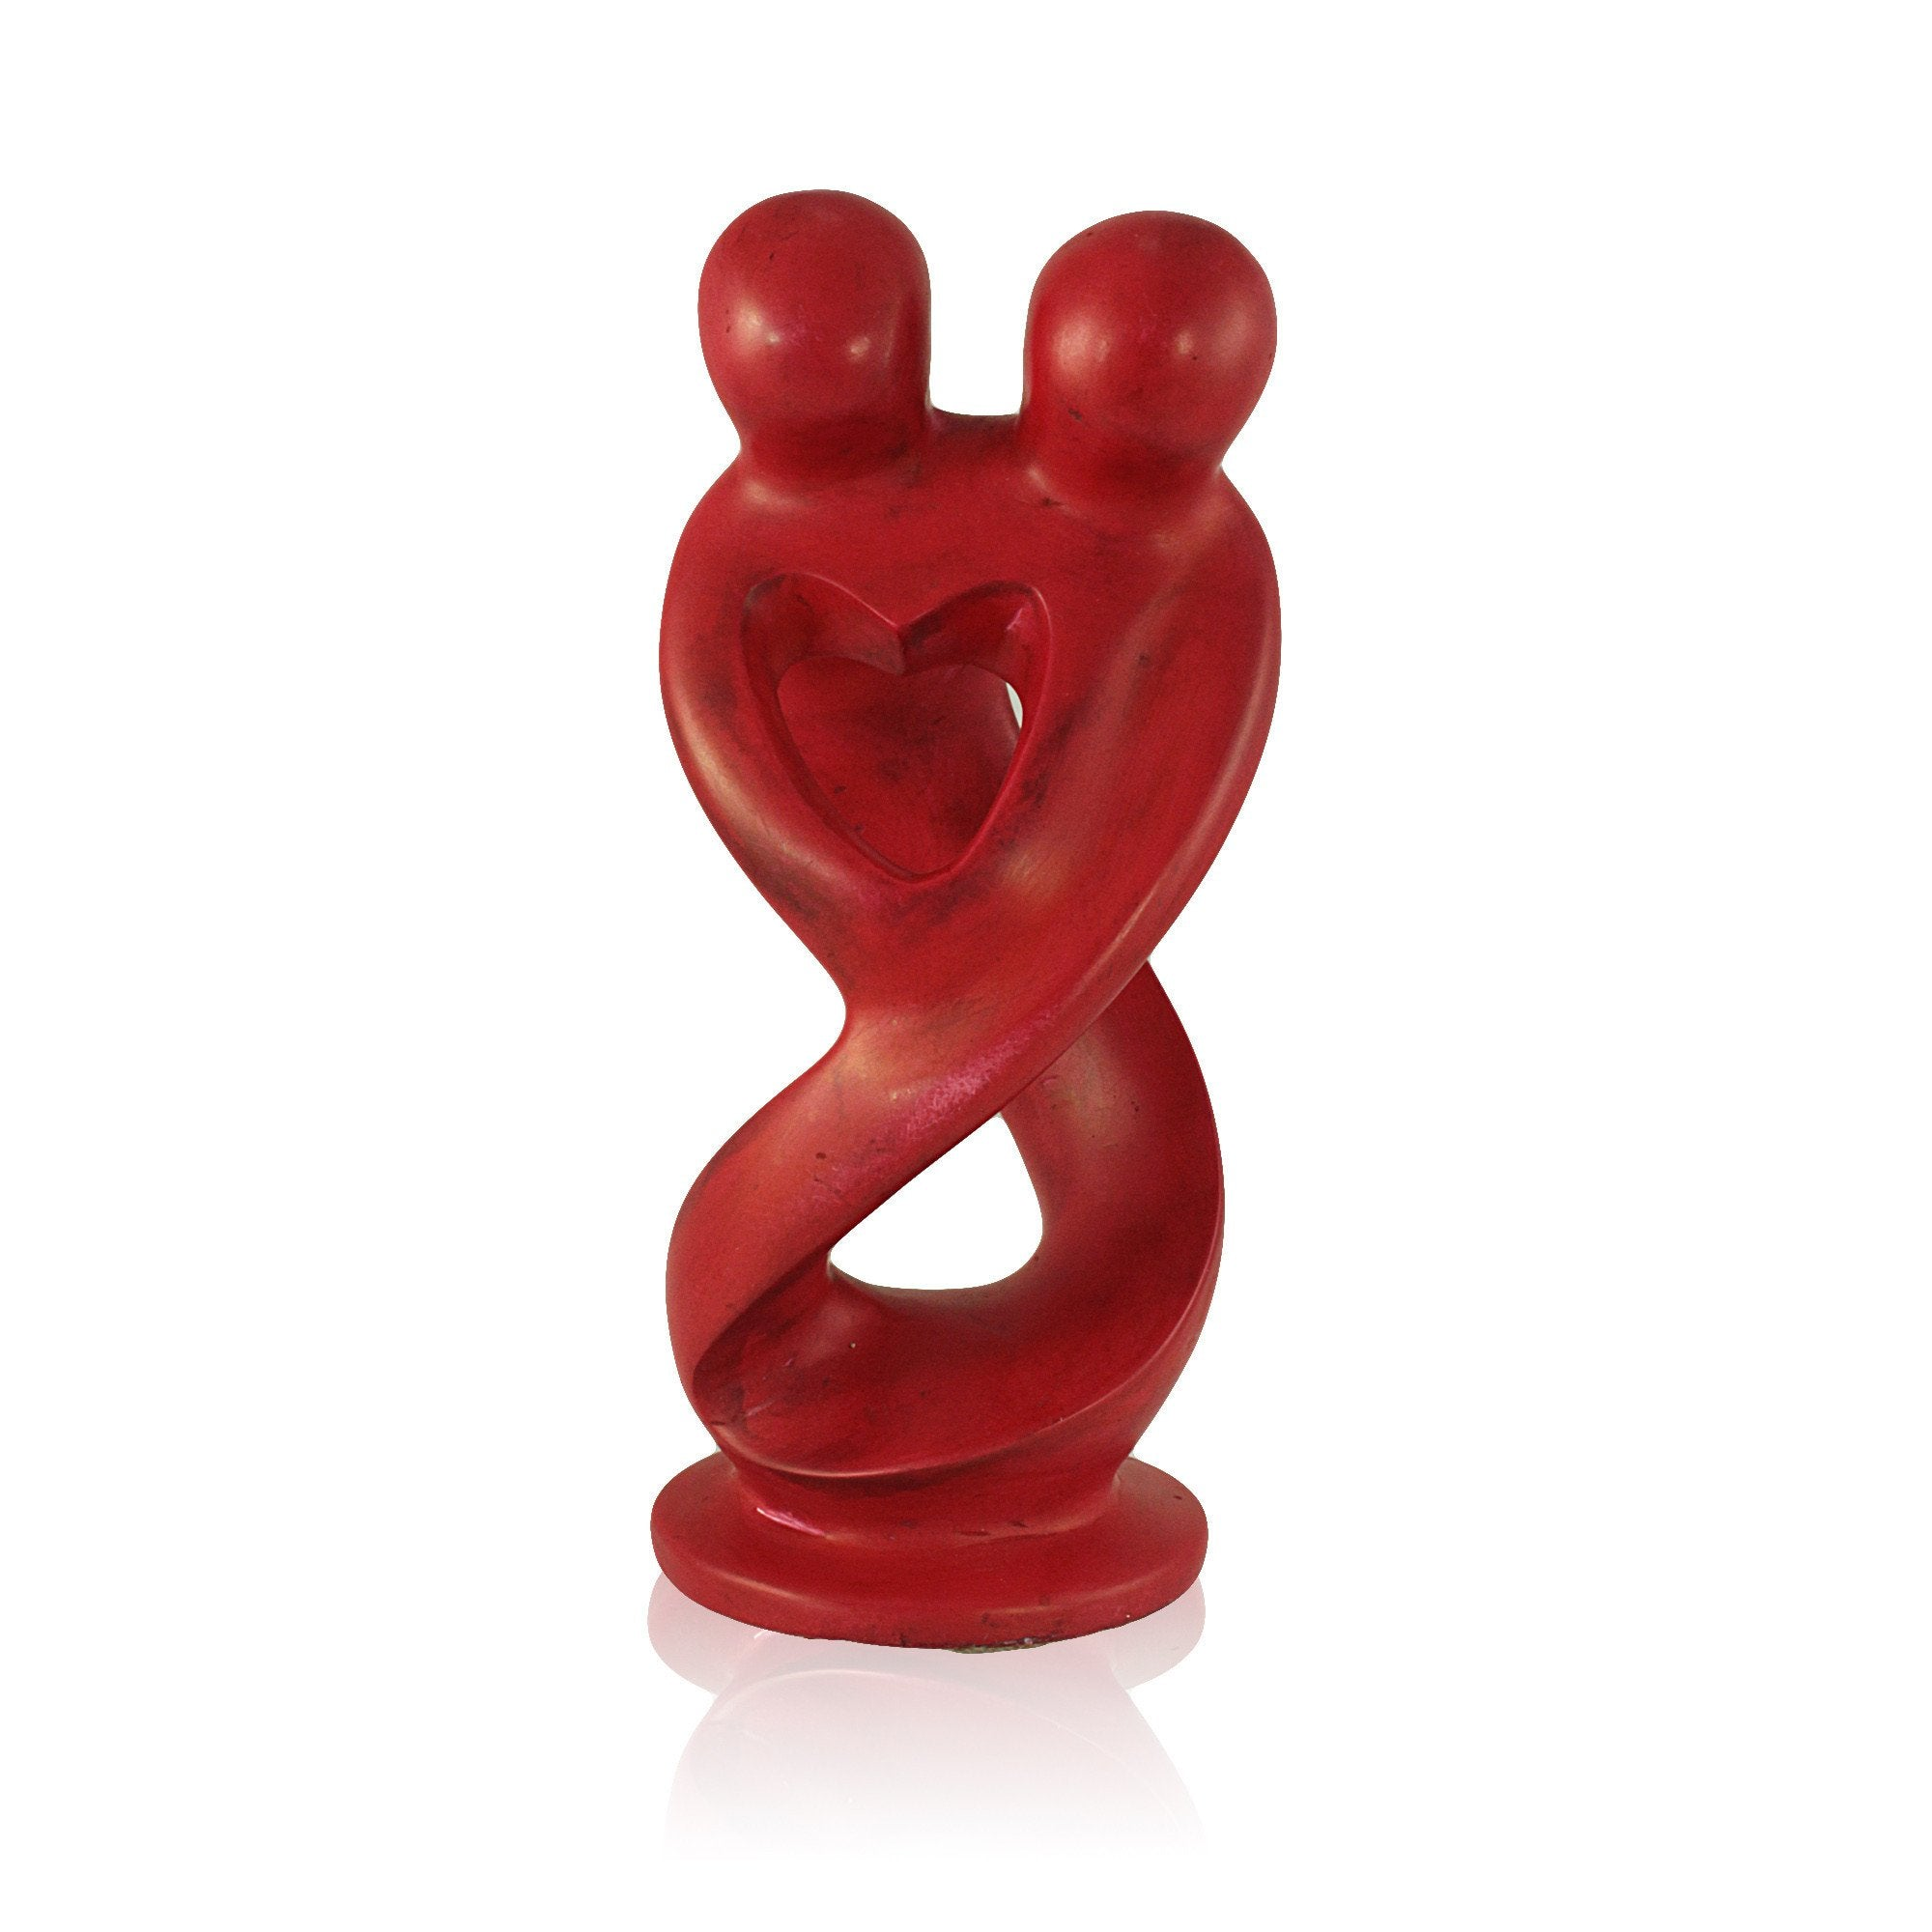 Lovers soapstone abstract figurine hand made in kenya